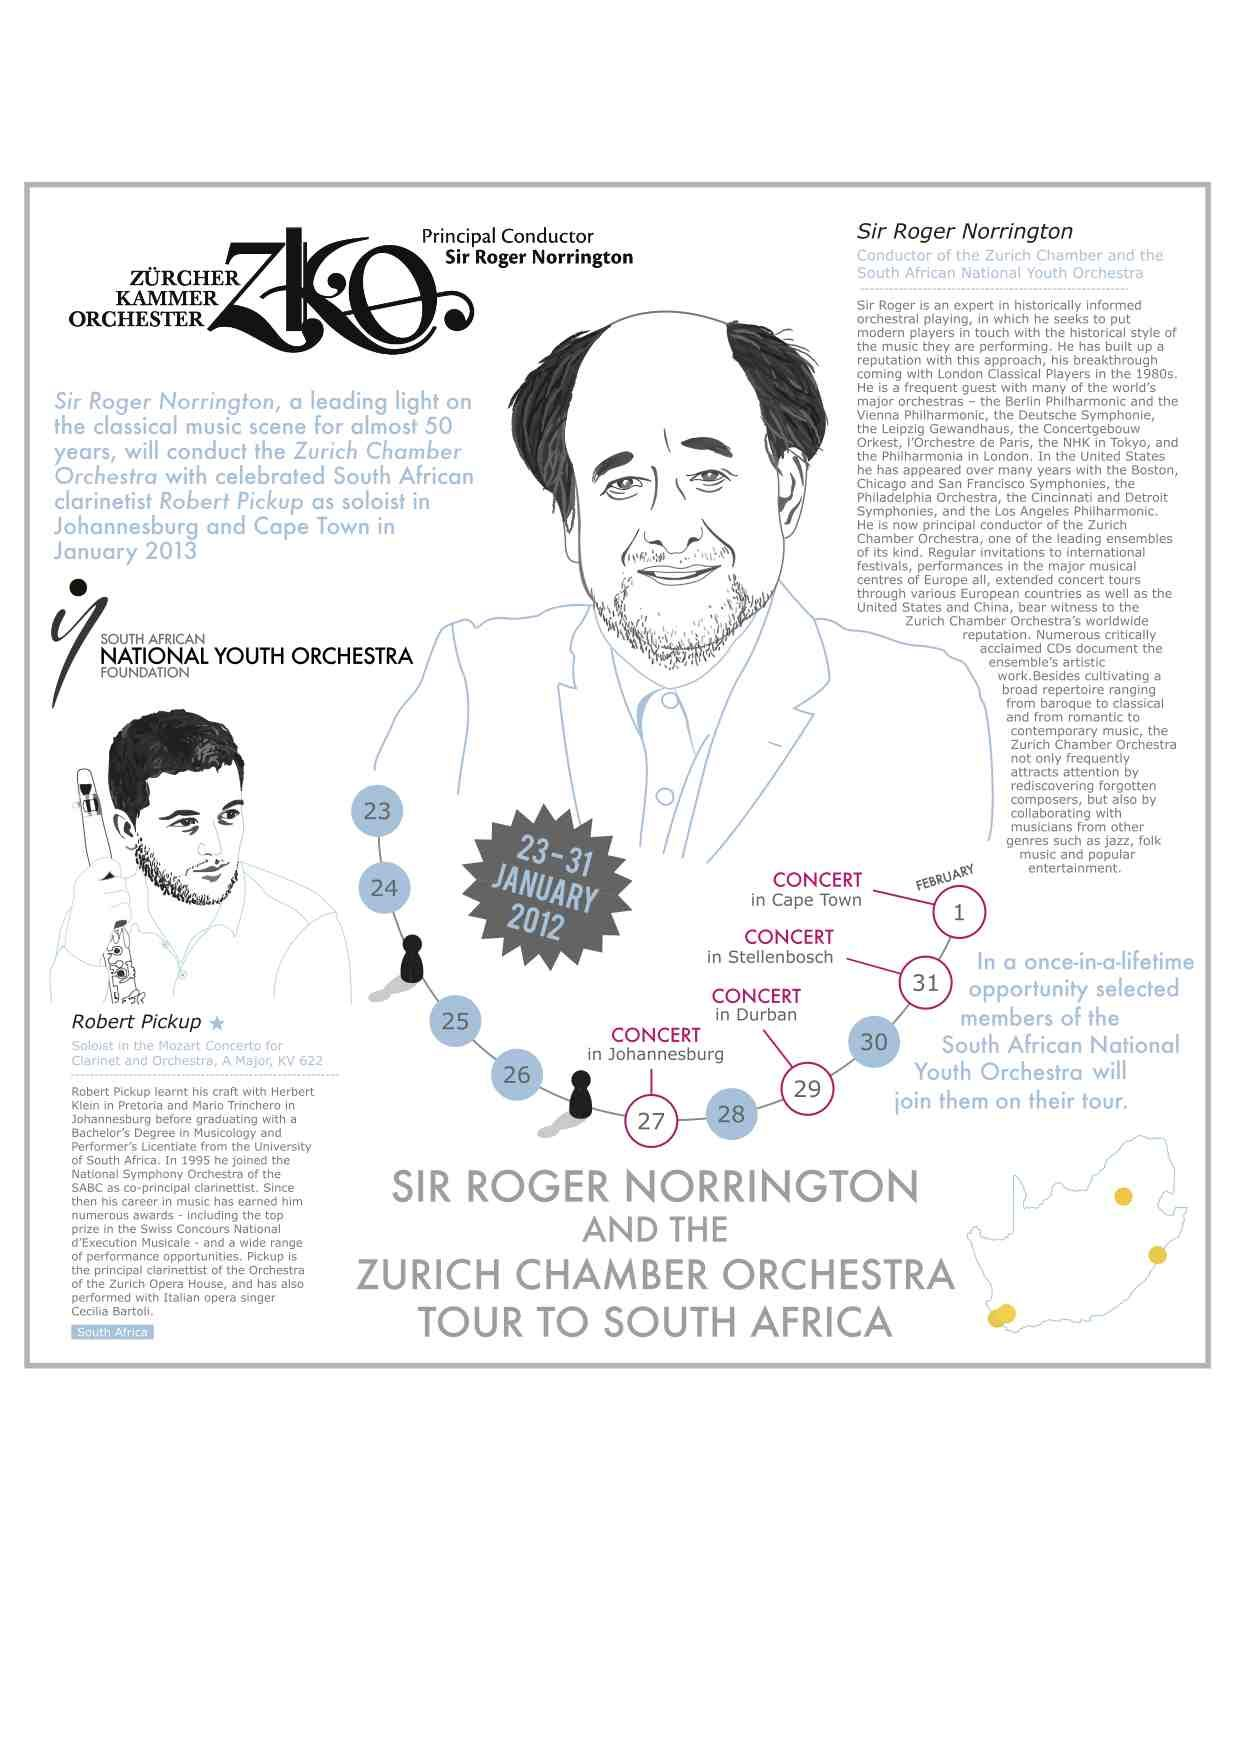 Brochure for the ZKO Tour of South Africa (With images